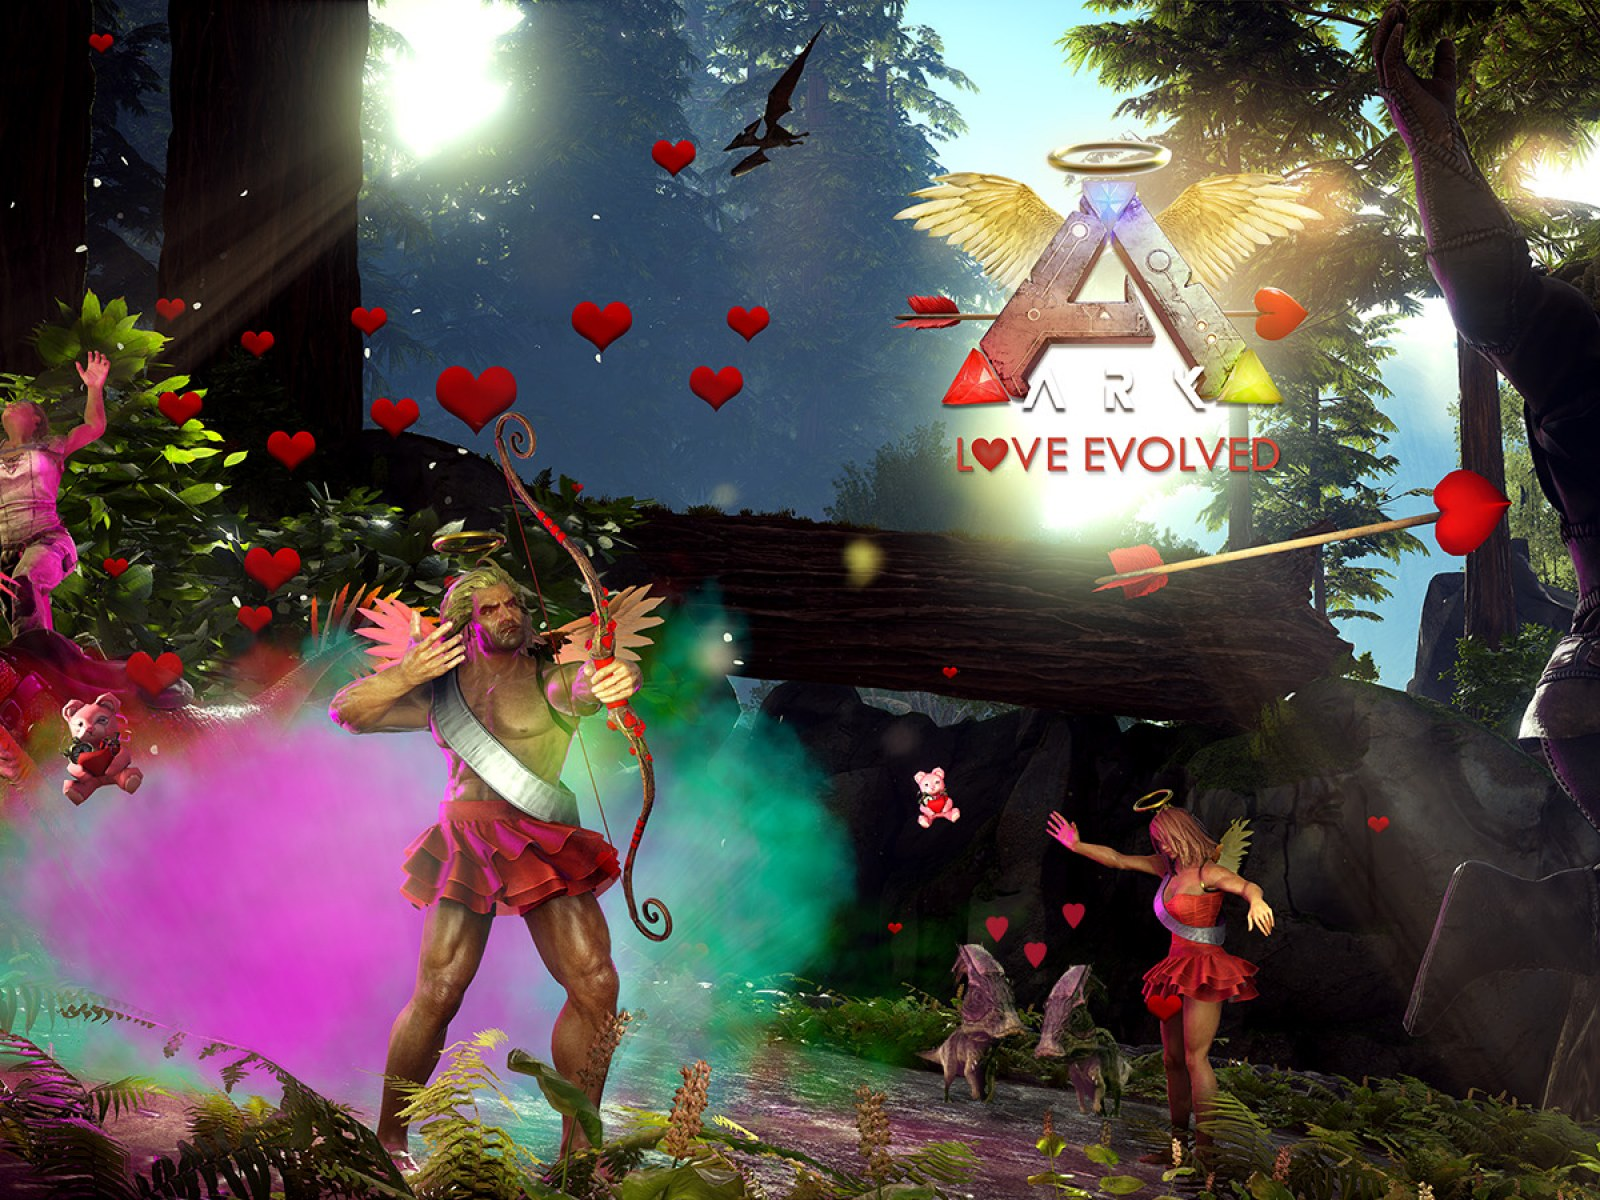 ARK' Update 2.15 Adds Love Evolved Valentine's Event on PS4, Xbox